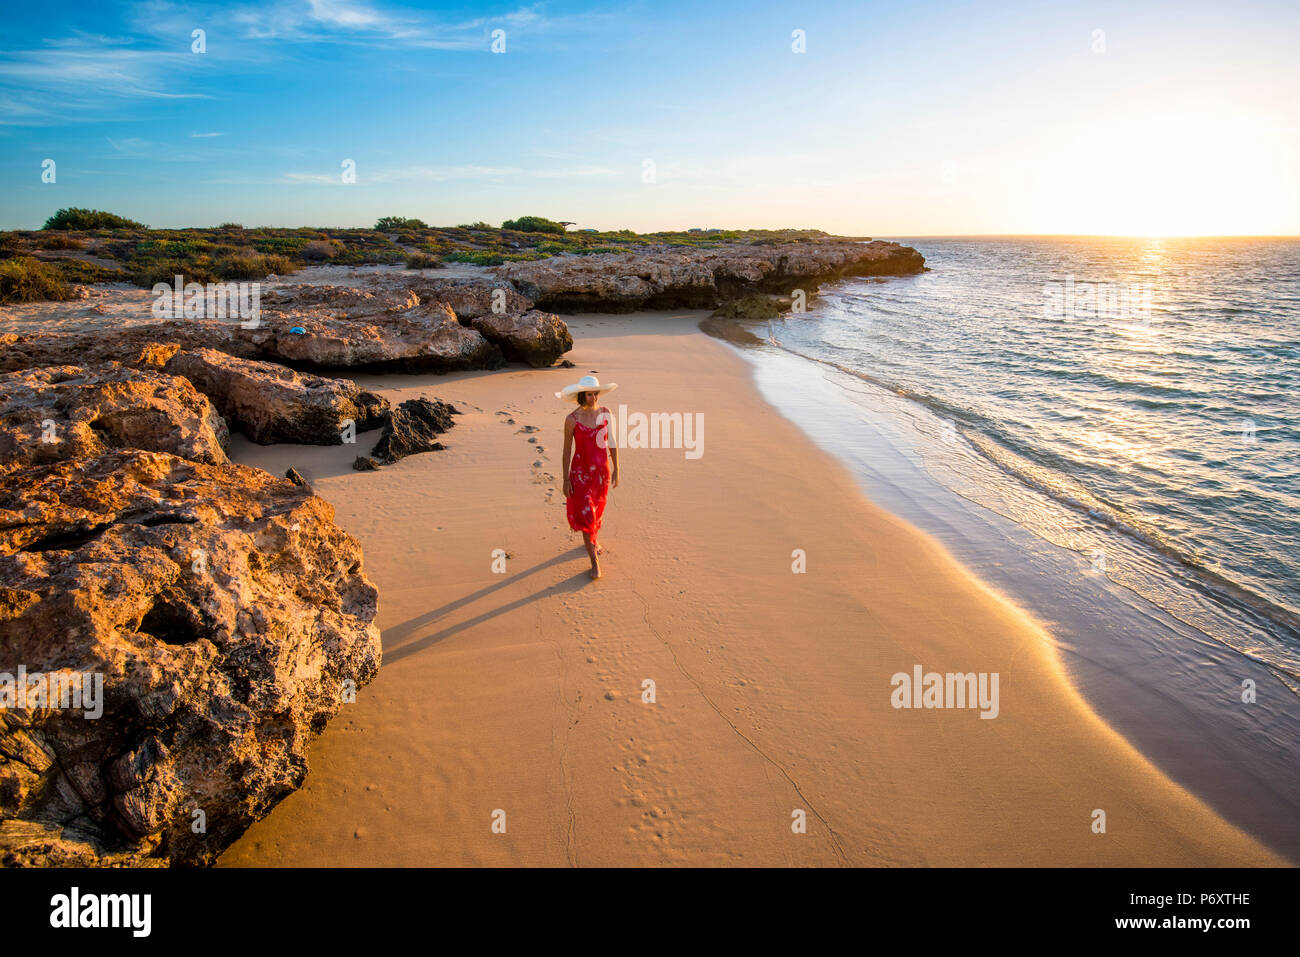 Osprey Bay, Cape Range National Park, Exmouth, Western Australia, Australia. Woman with elegant red dress and straw hat admiring the sunsset (MR). - Stock Image